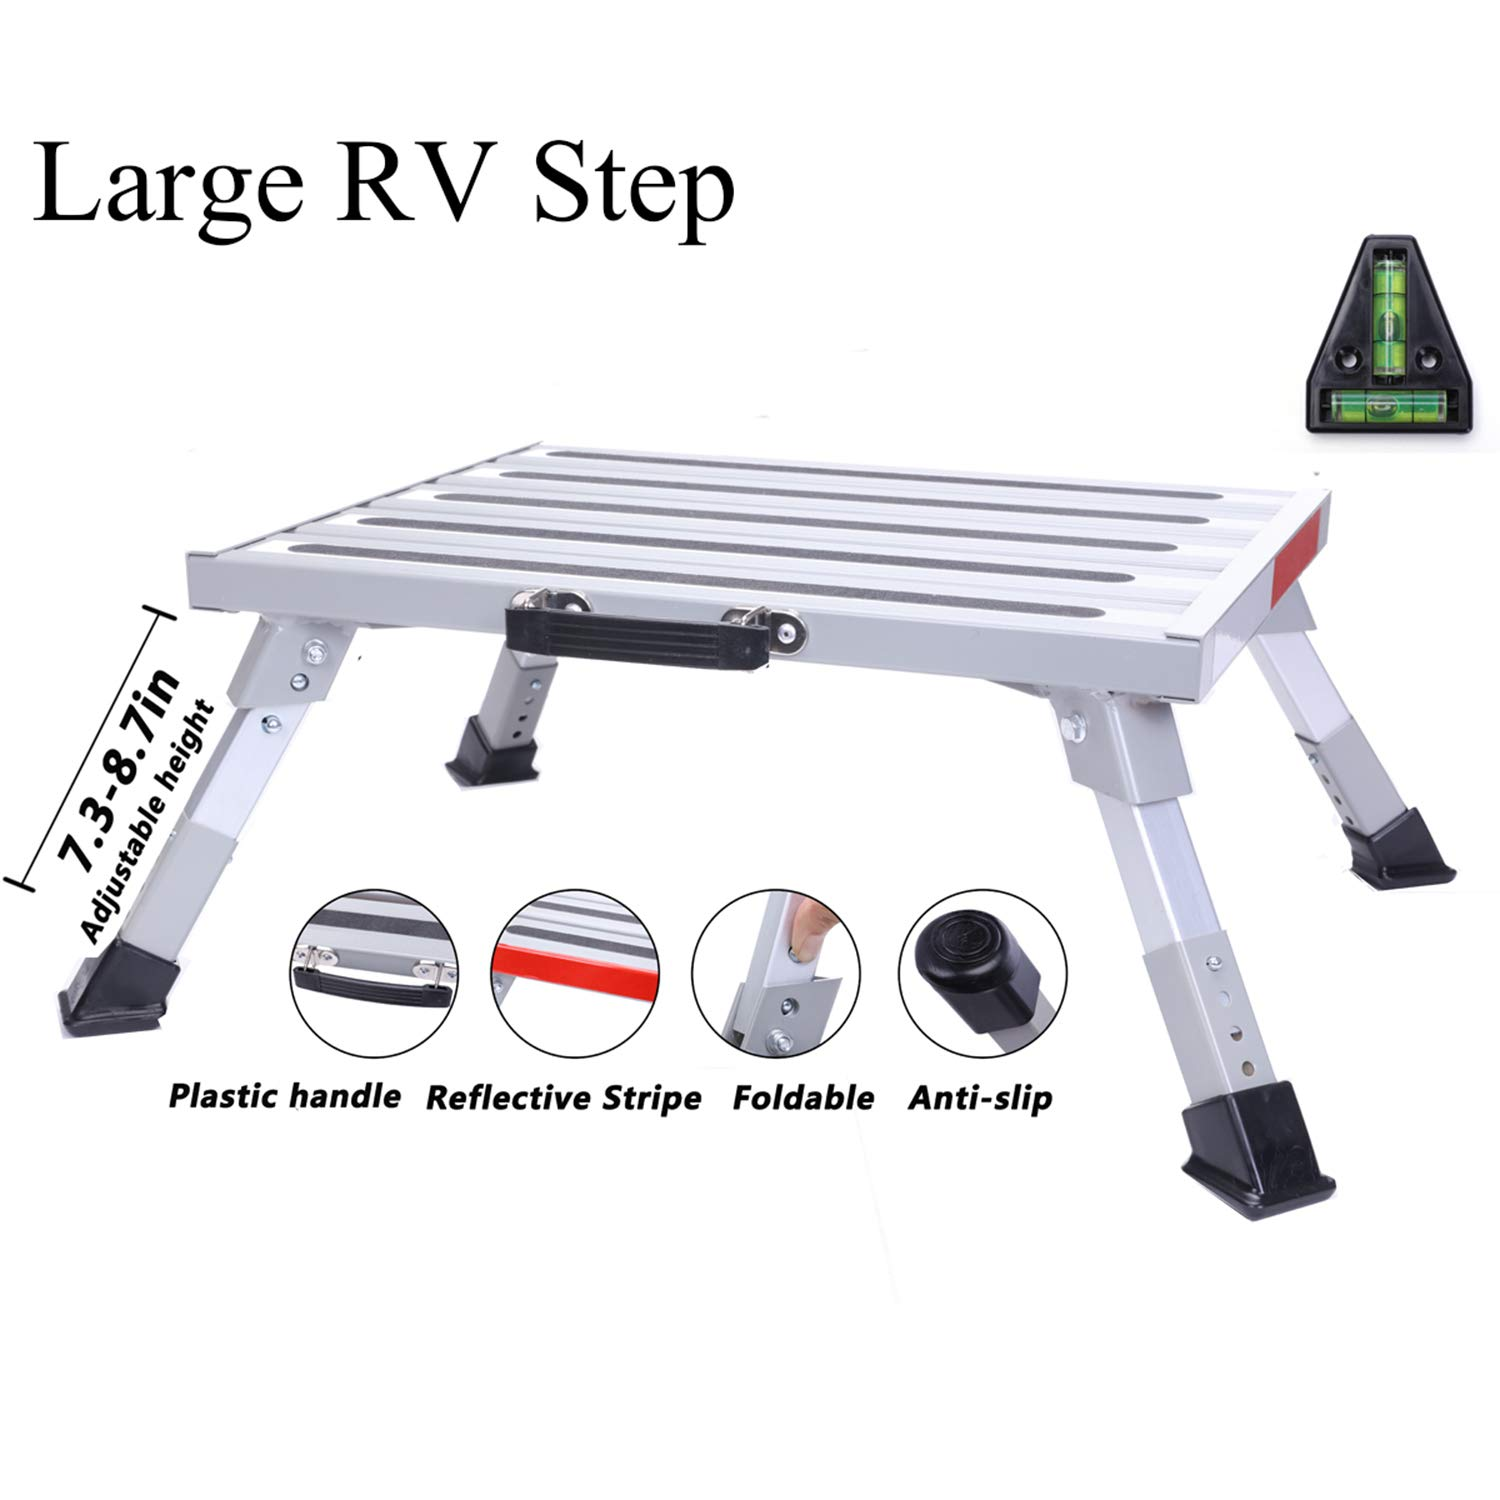 """Homeon Wheels 19"""" x 14.5"""" Large RV Step Stool, Adjustable Height Aluminum Folding Platform Step and Ladder with Non-Slip Rubber Feet, More Stable Supports Up to 1,500lbs Safety RV Steps"""